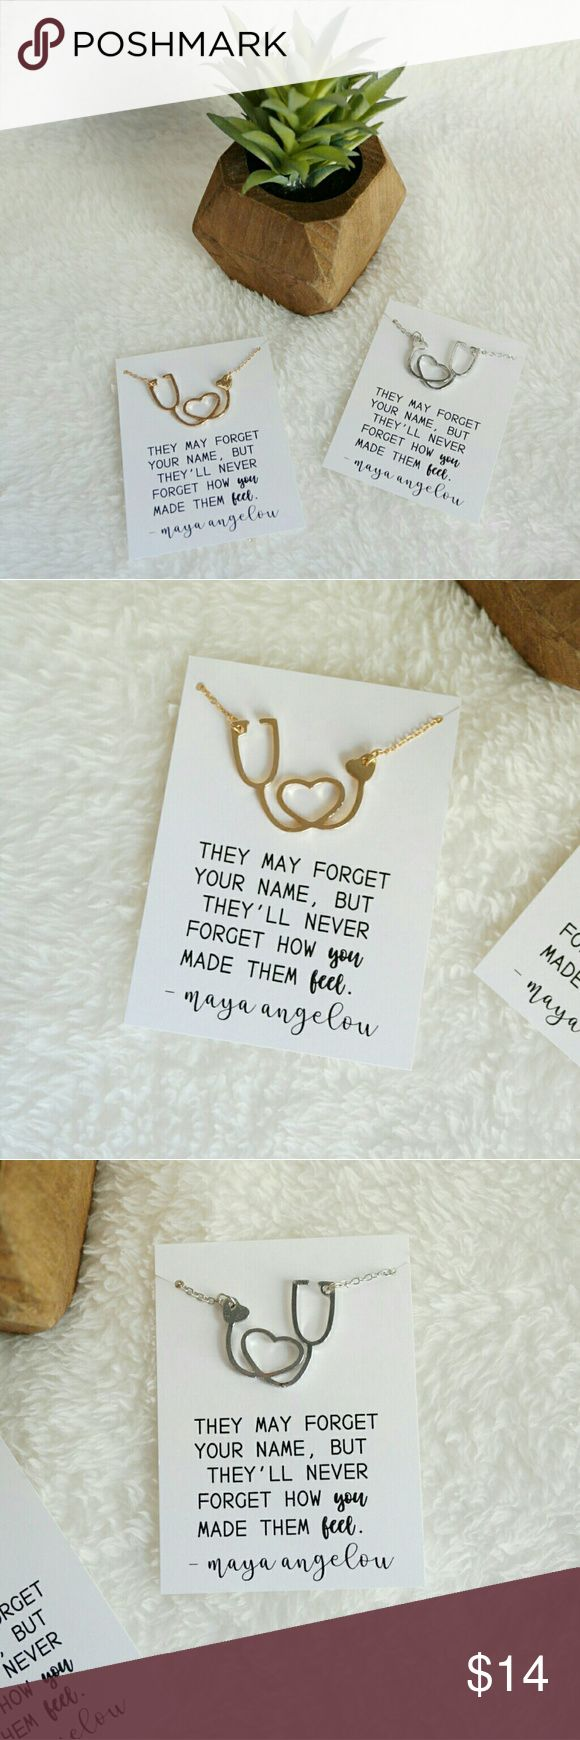 Heart Stethoscope Necklace Beautiful gift for a nurse, doctor, or anyone else in the medical profession. Available in silver or gold. Each necklace will come with the quote card pictured and packaged. This listing is for one necklace. Firm price. Jewelry Necklaces